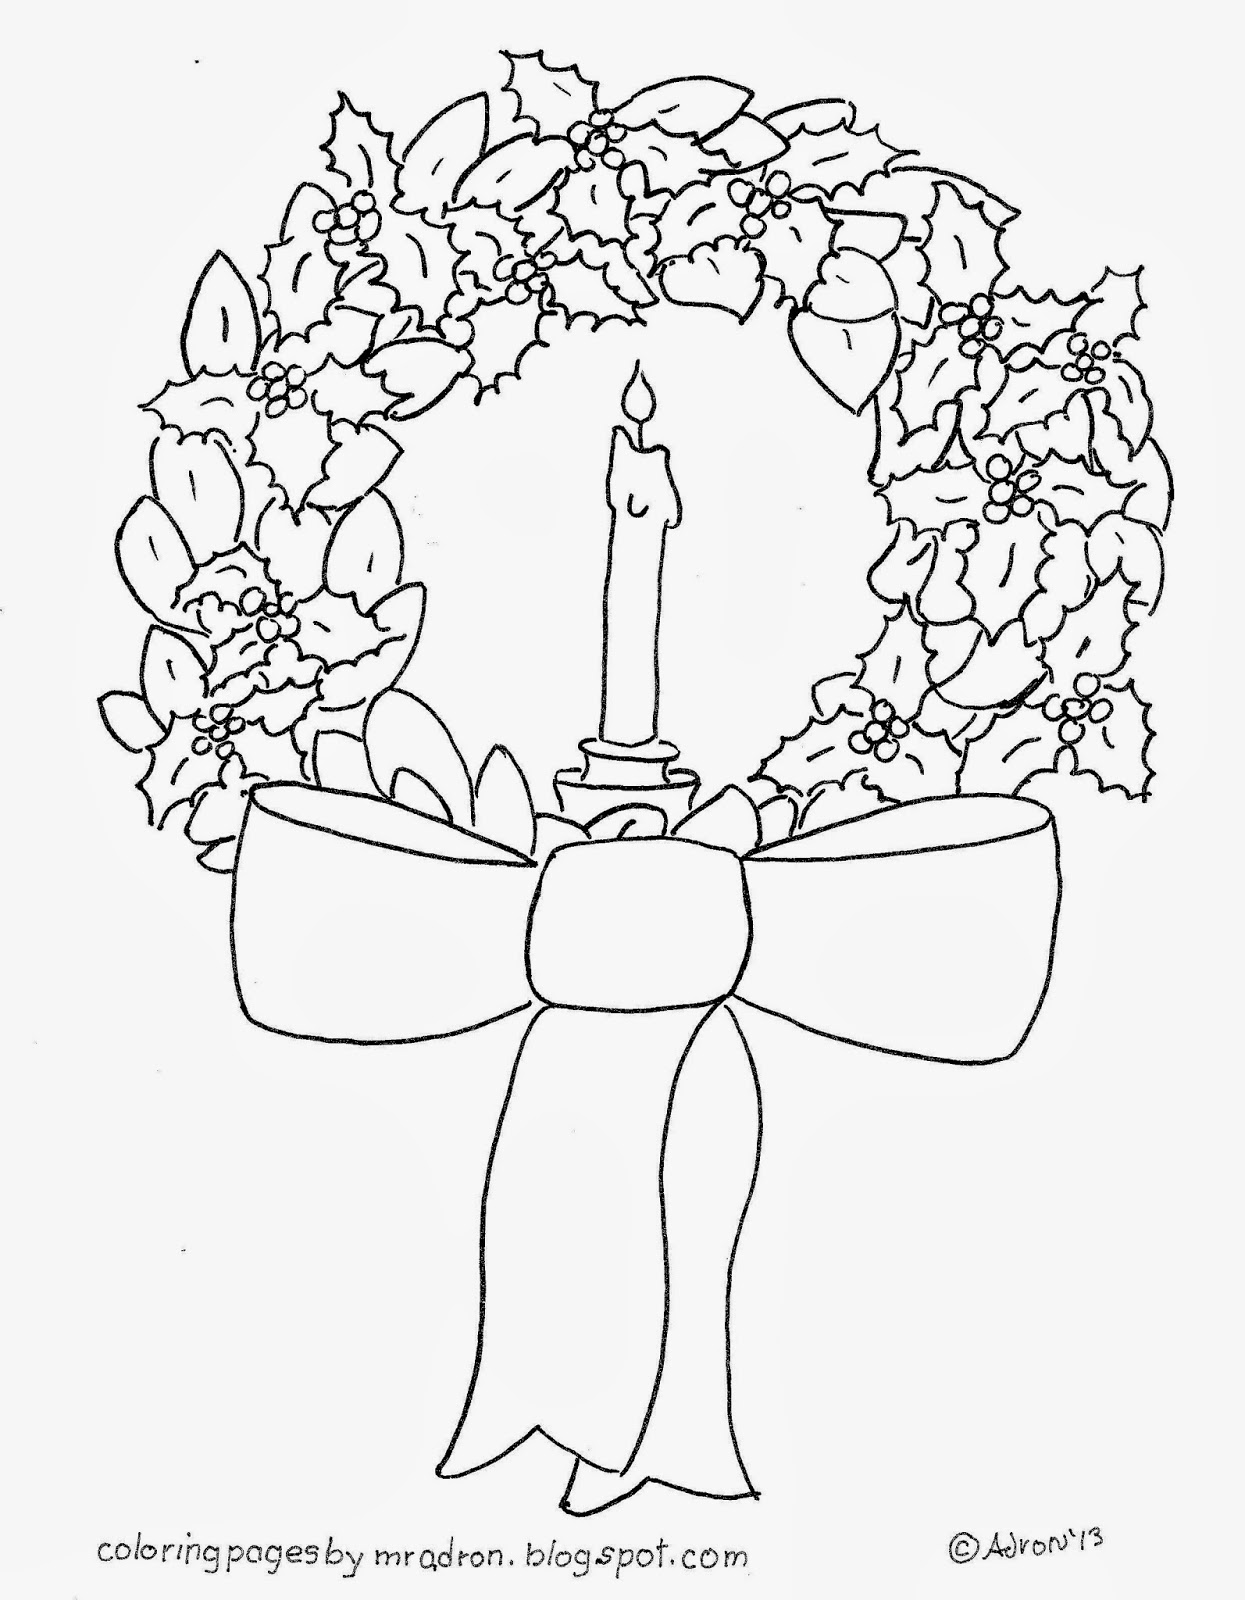 Coloring Pages for Kids by Mr. Adron: Christmas Wreath